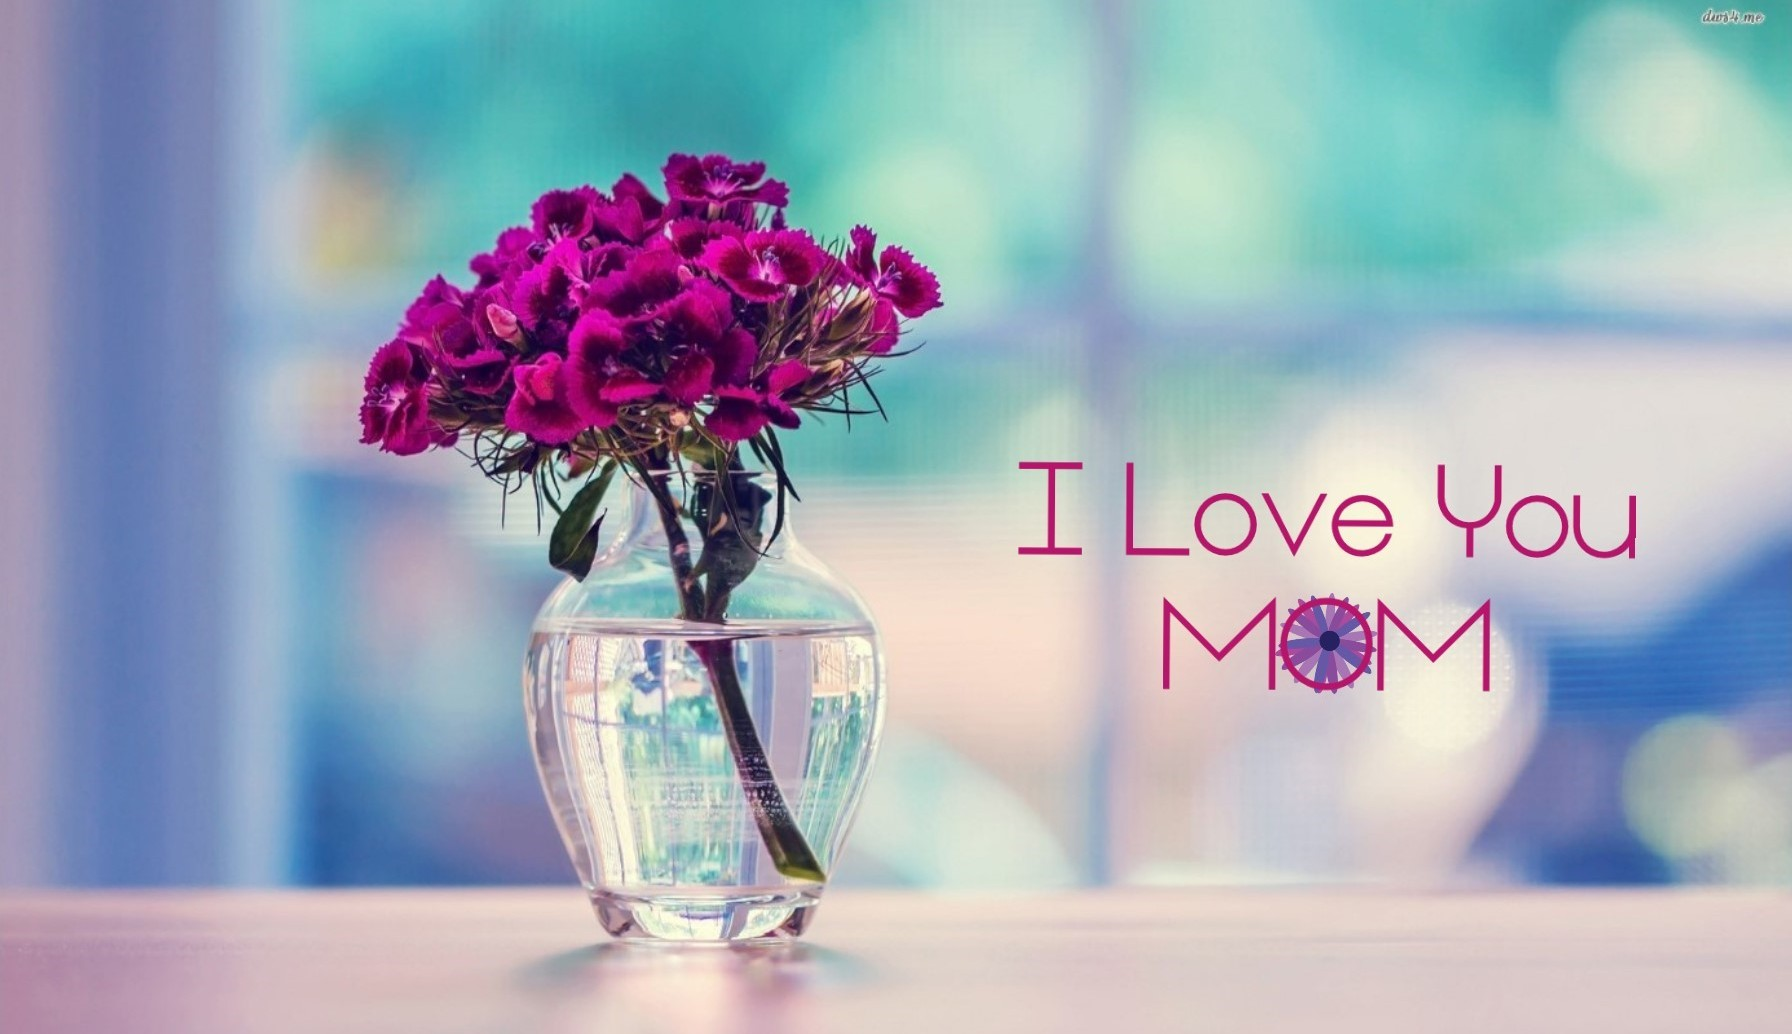 Happy Birthday Mom Wishes and Quotes